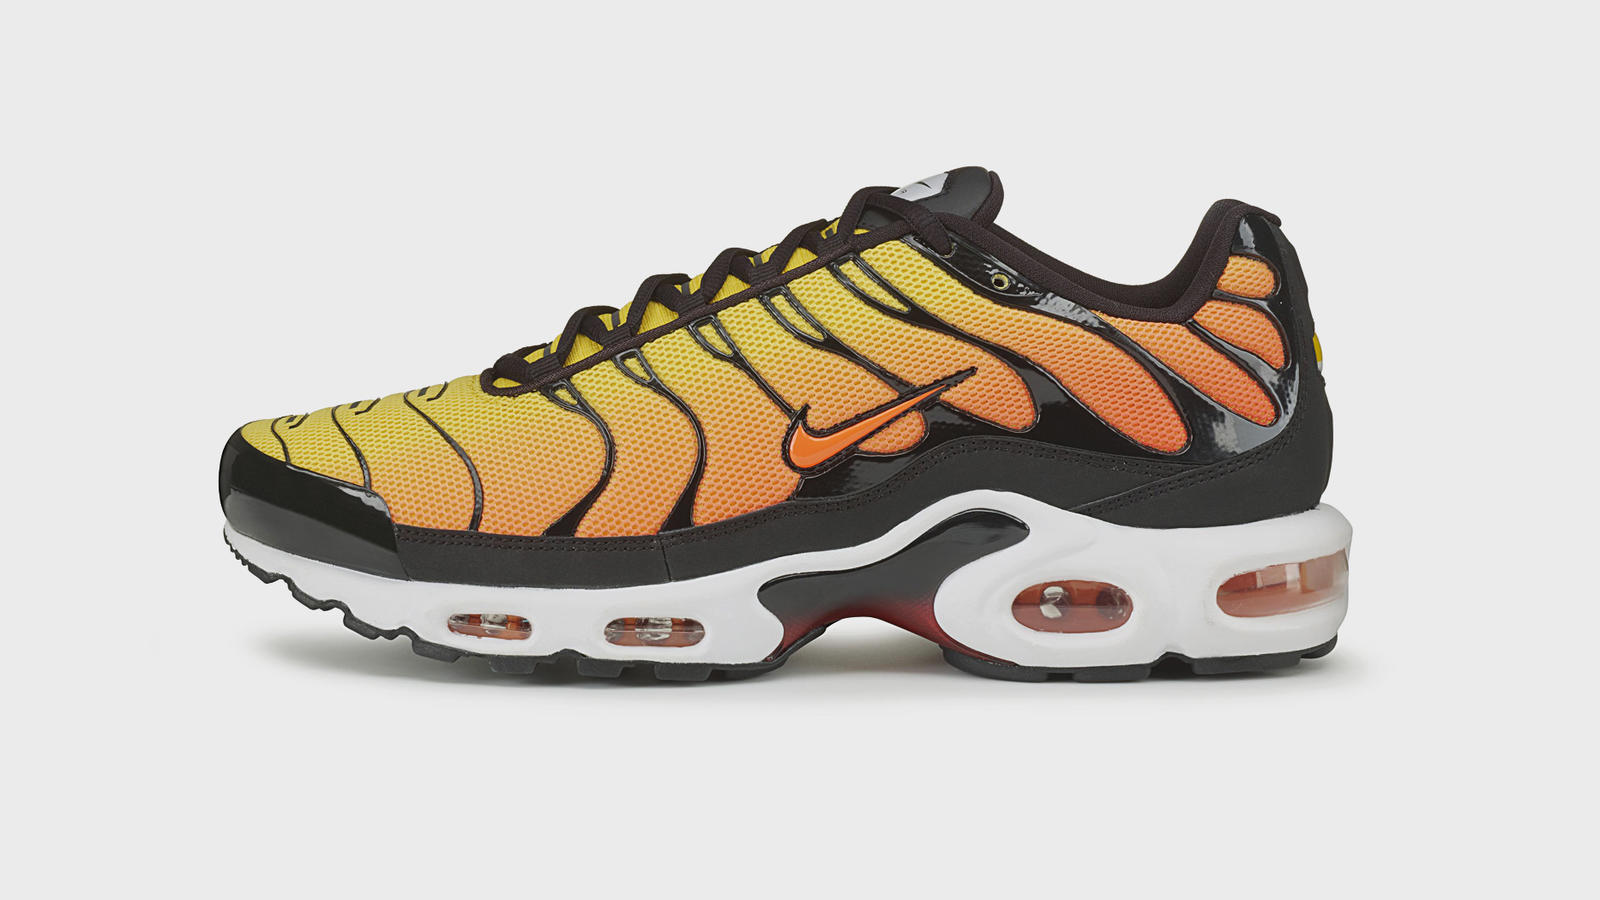 detailed look 2a328 5421d The Untold Story of the Nike Air Max Plus 23